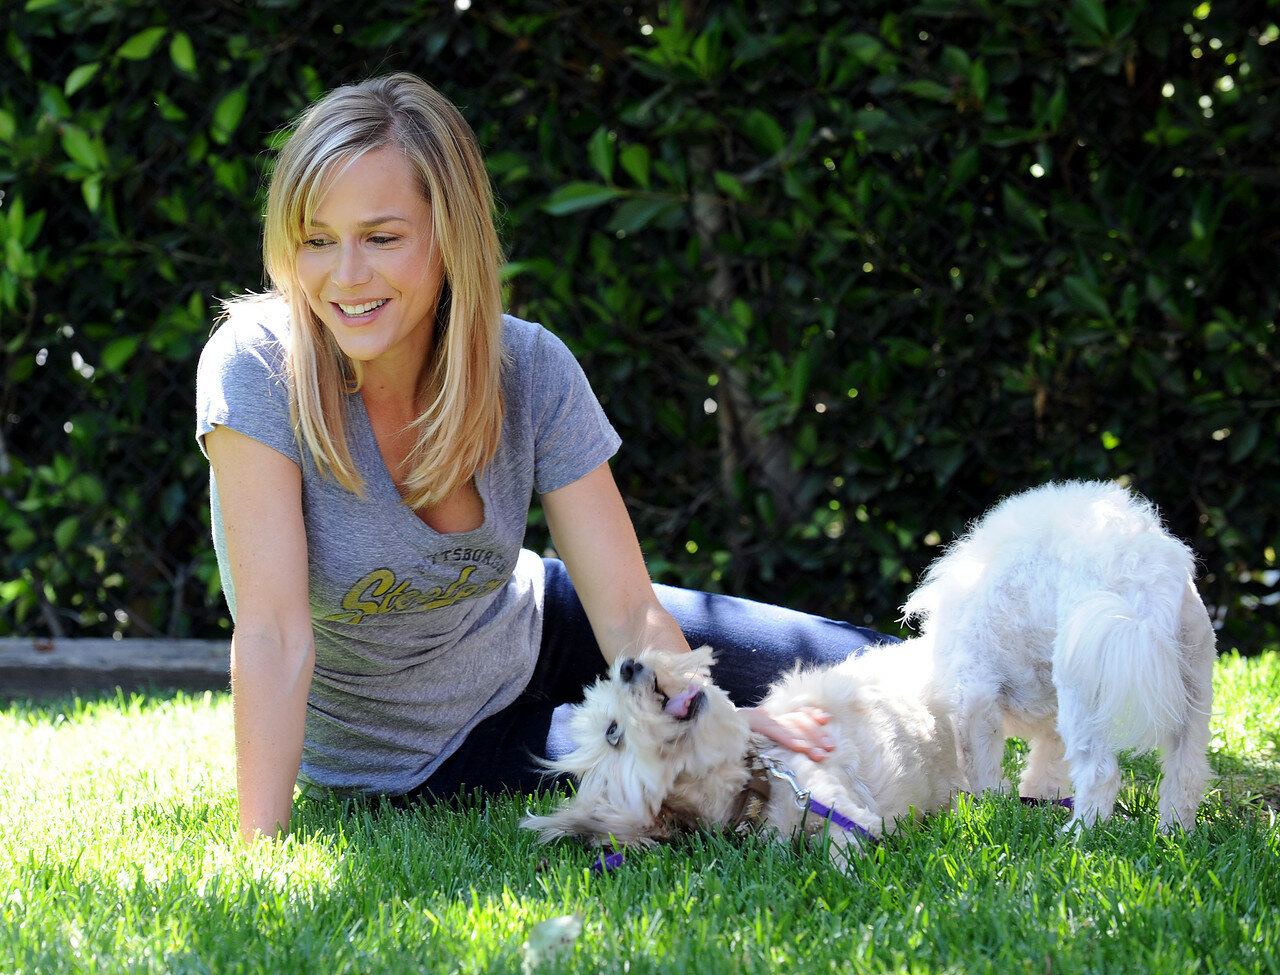 No Ordinary Family star Julie Benz playing with her dogs - Los Angeles